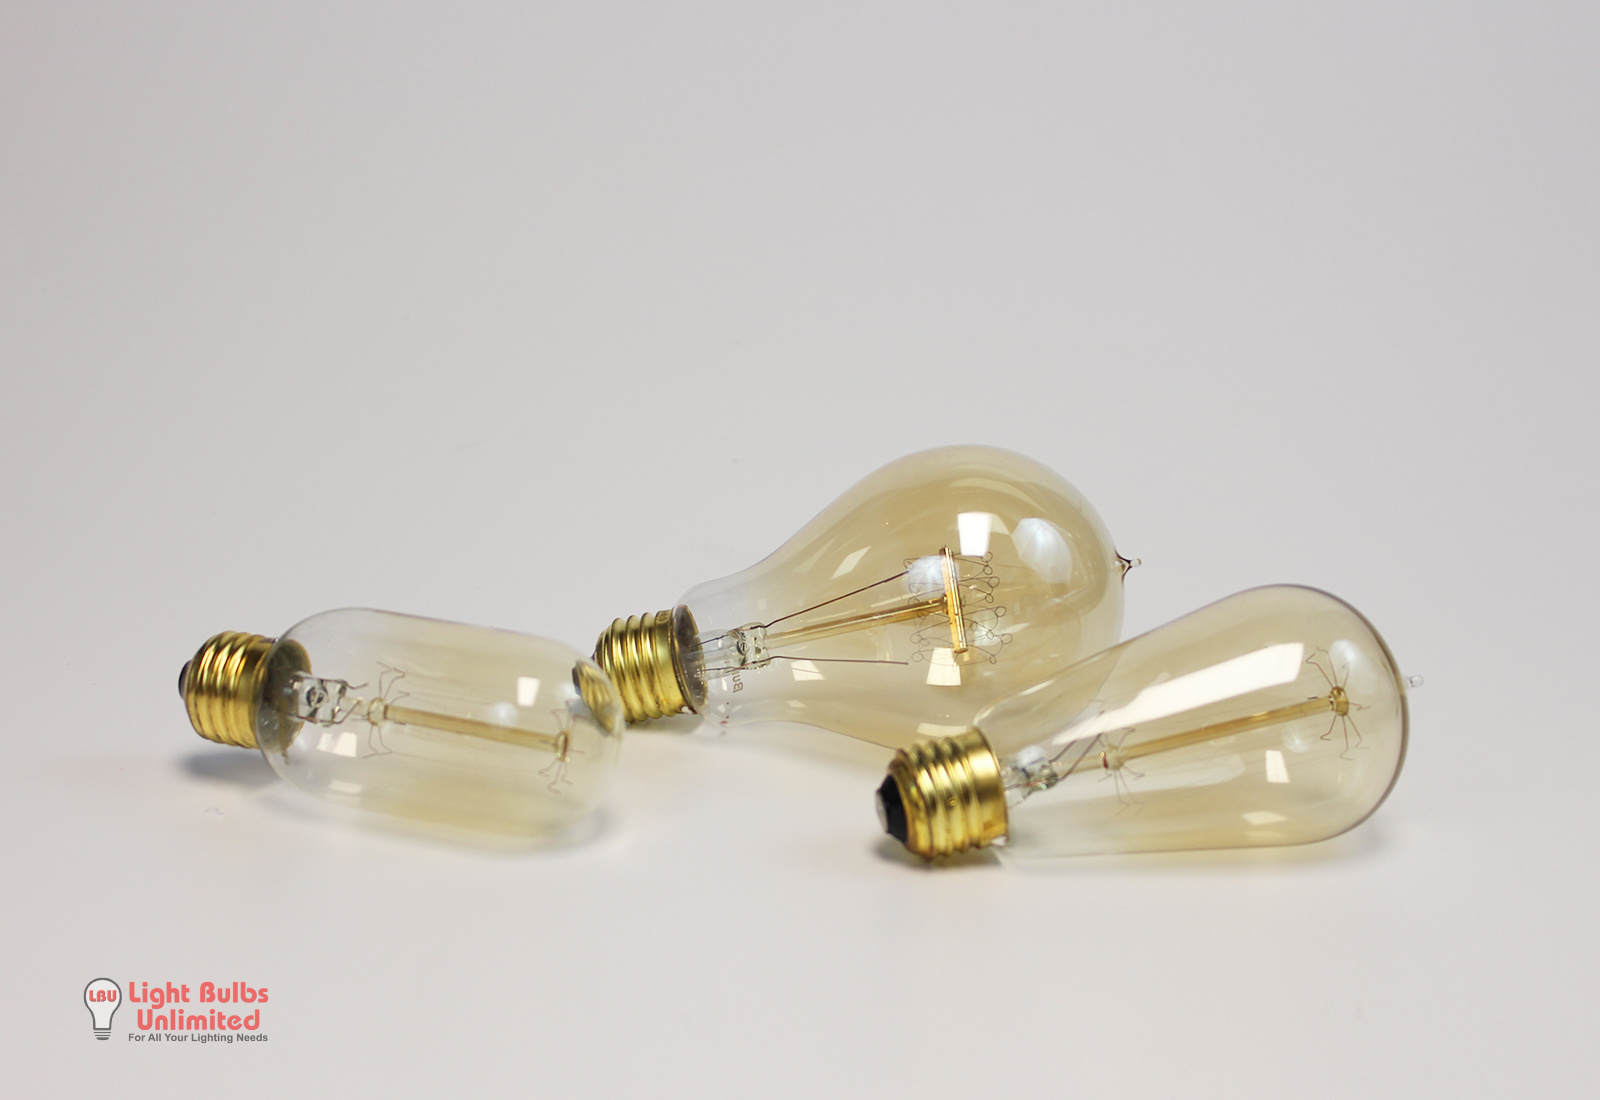 Vintage Light Bulbs In Products Unlimited